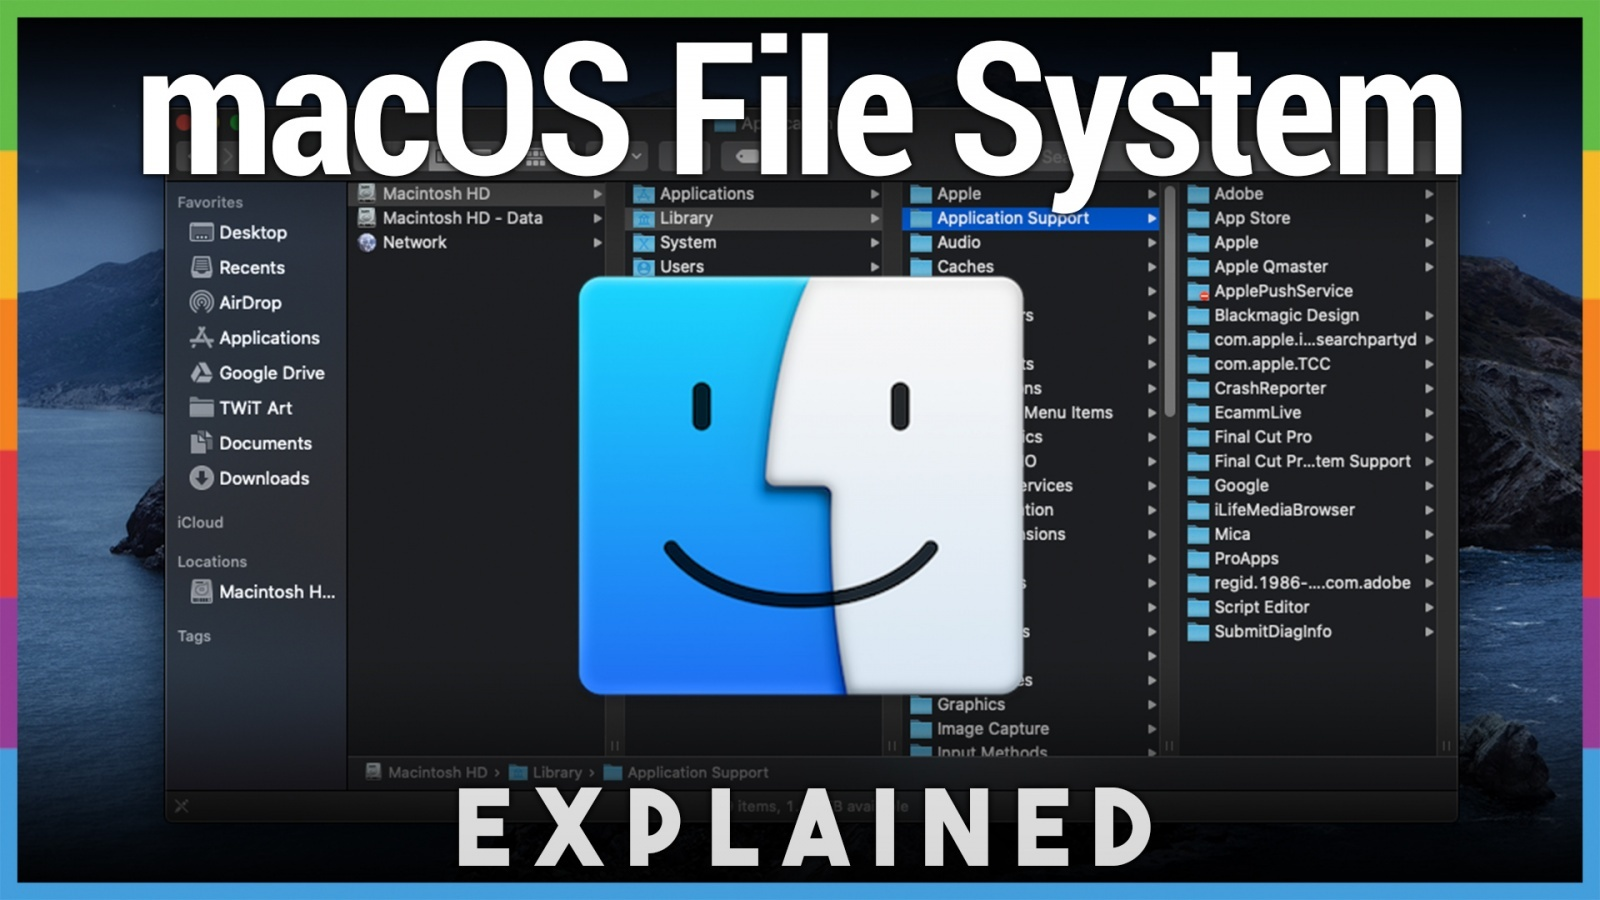 Inside the macOS File System